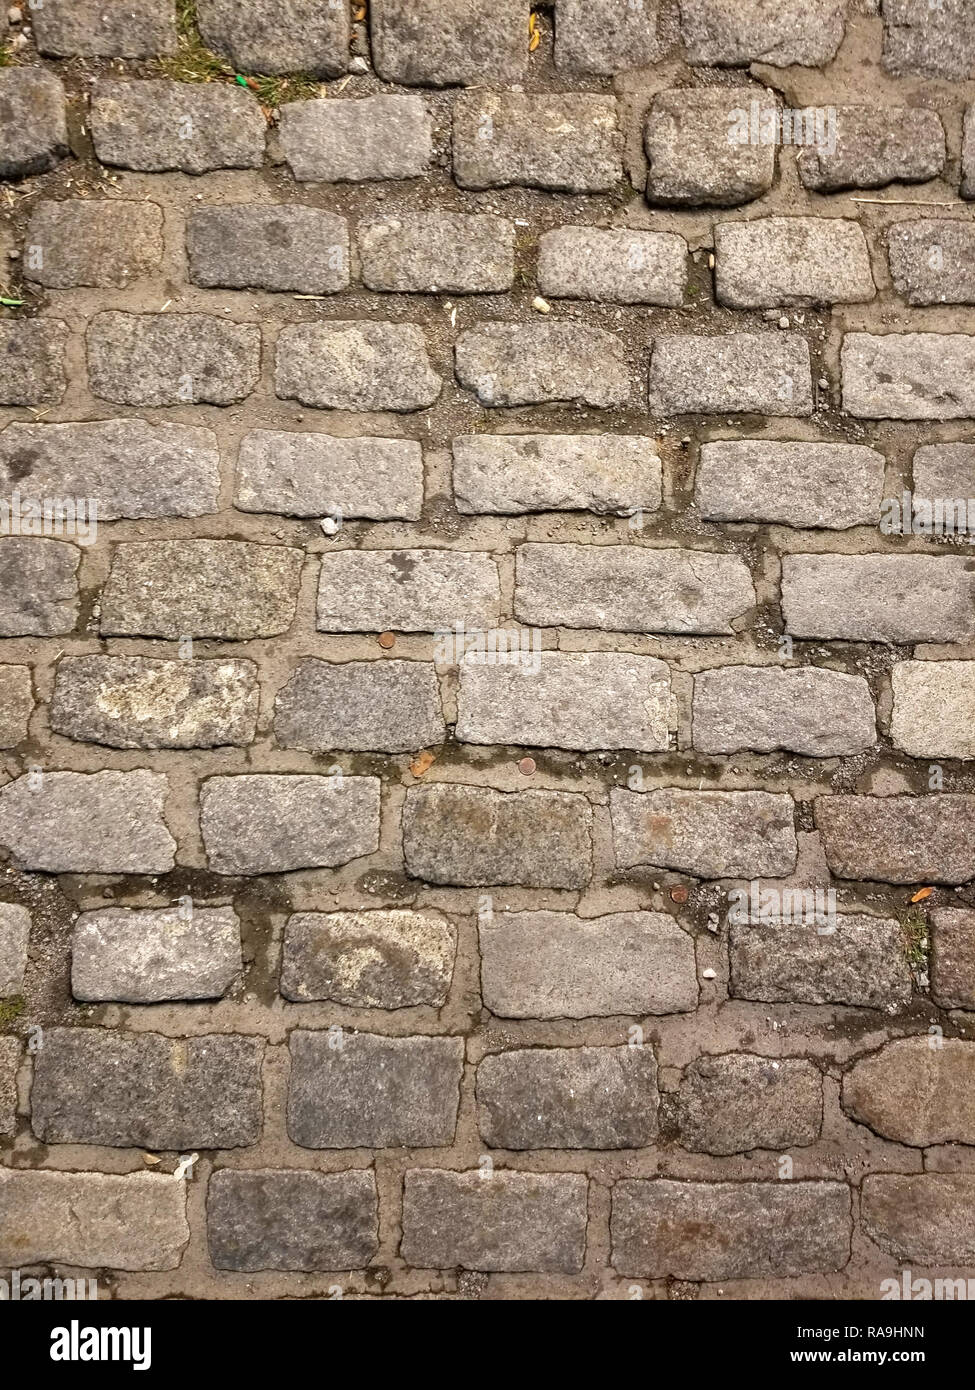 old brick textured background with dirt. drak gray colors Stock Photo